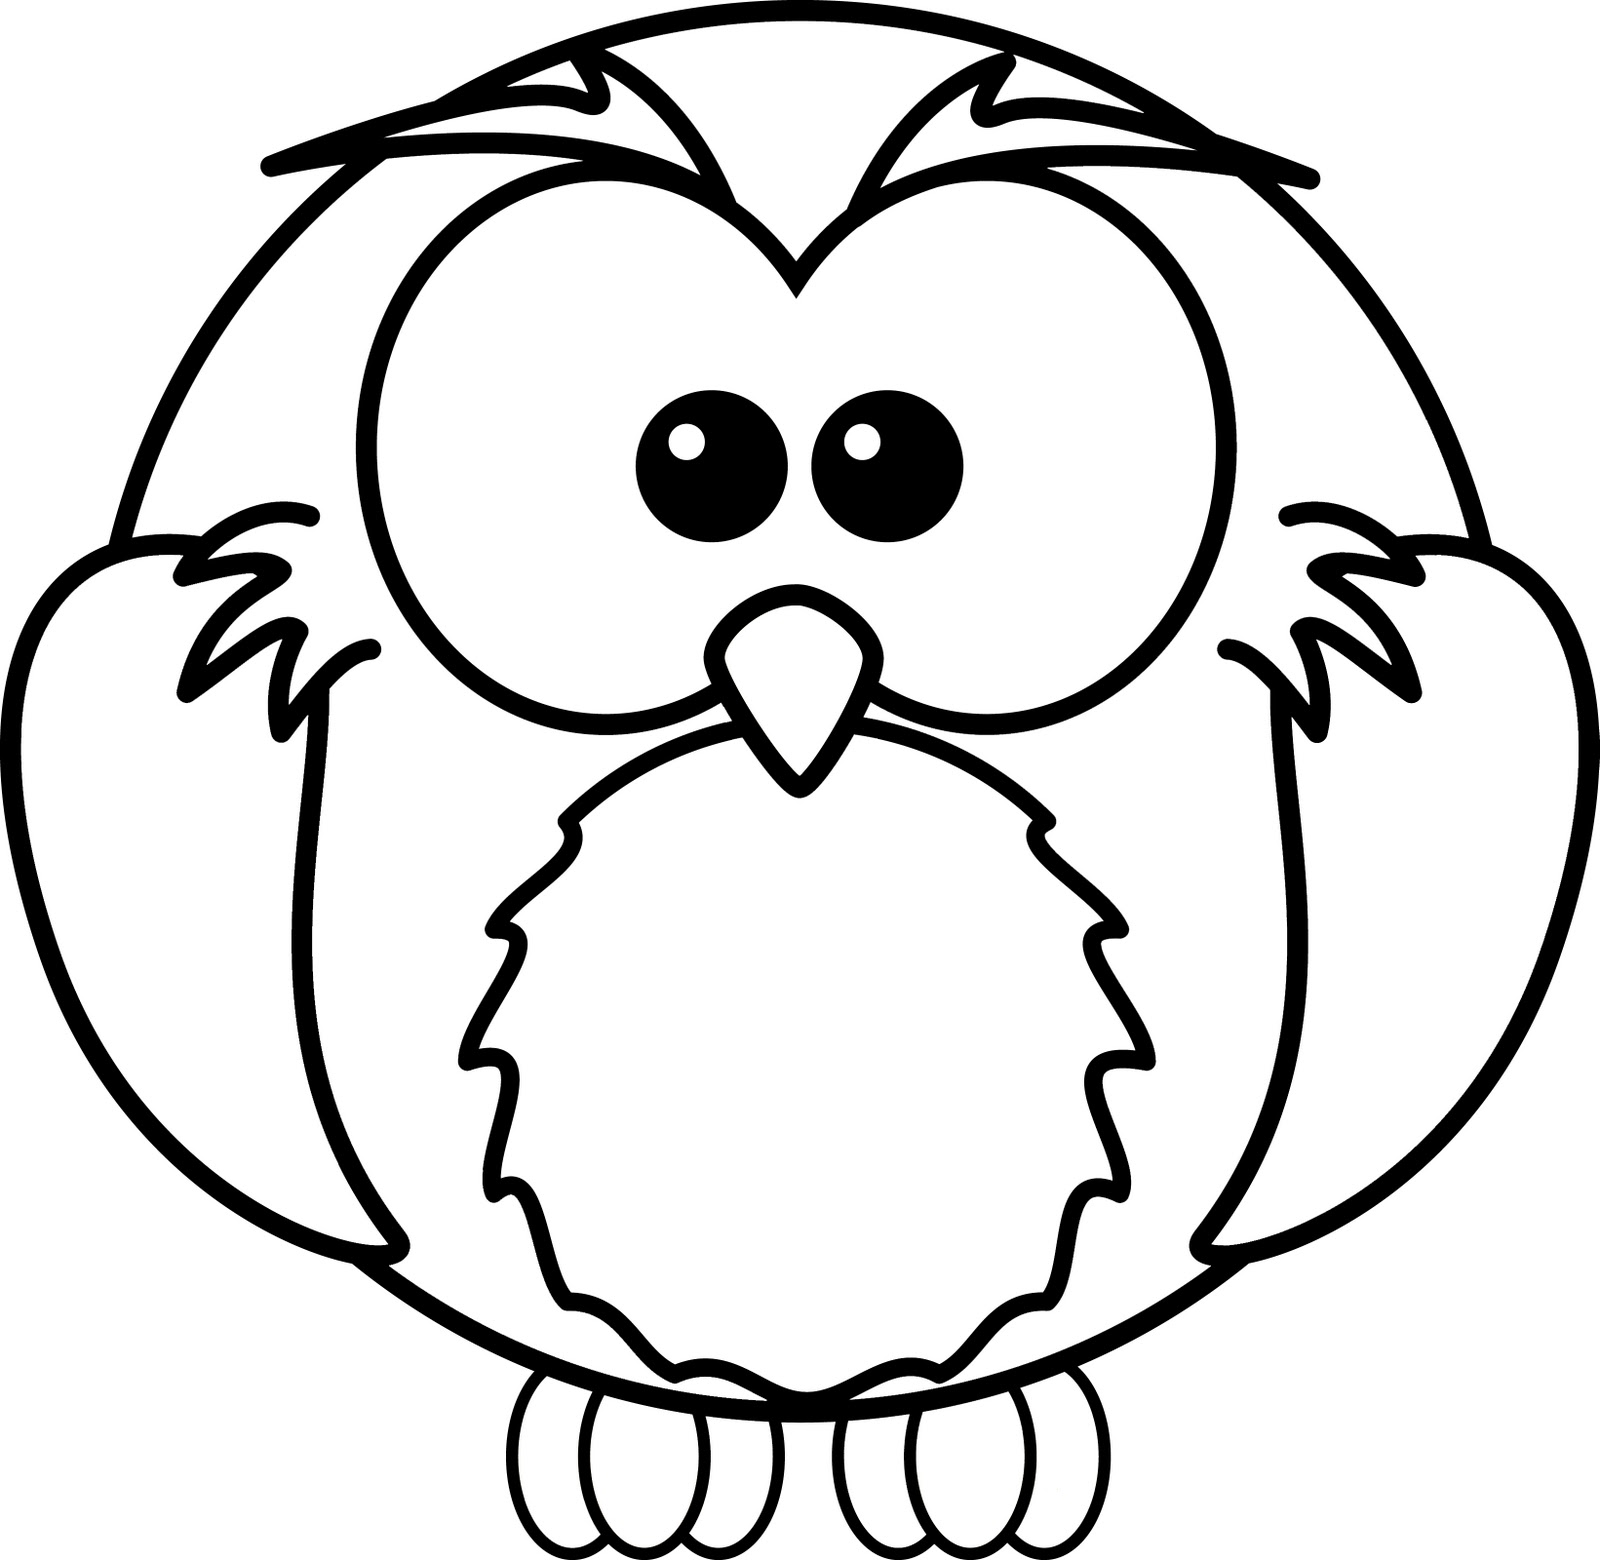 owl coloring pages free printable owl coloring pages owl coloring pages free coloring printable pages owl